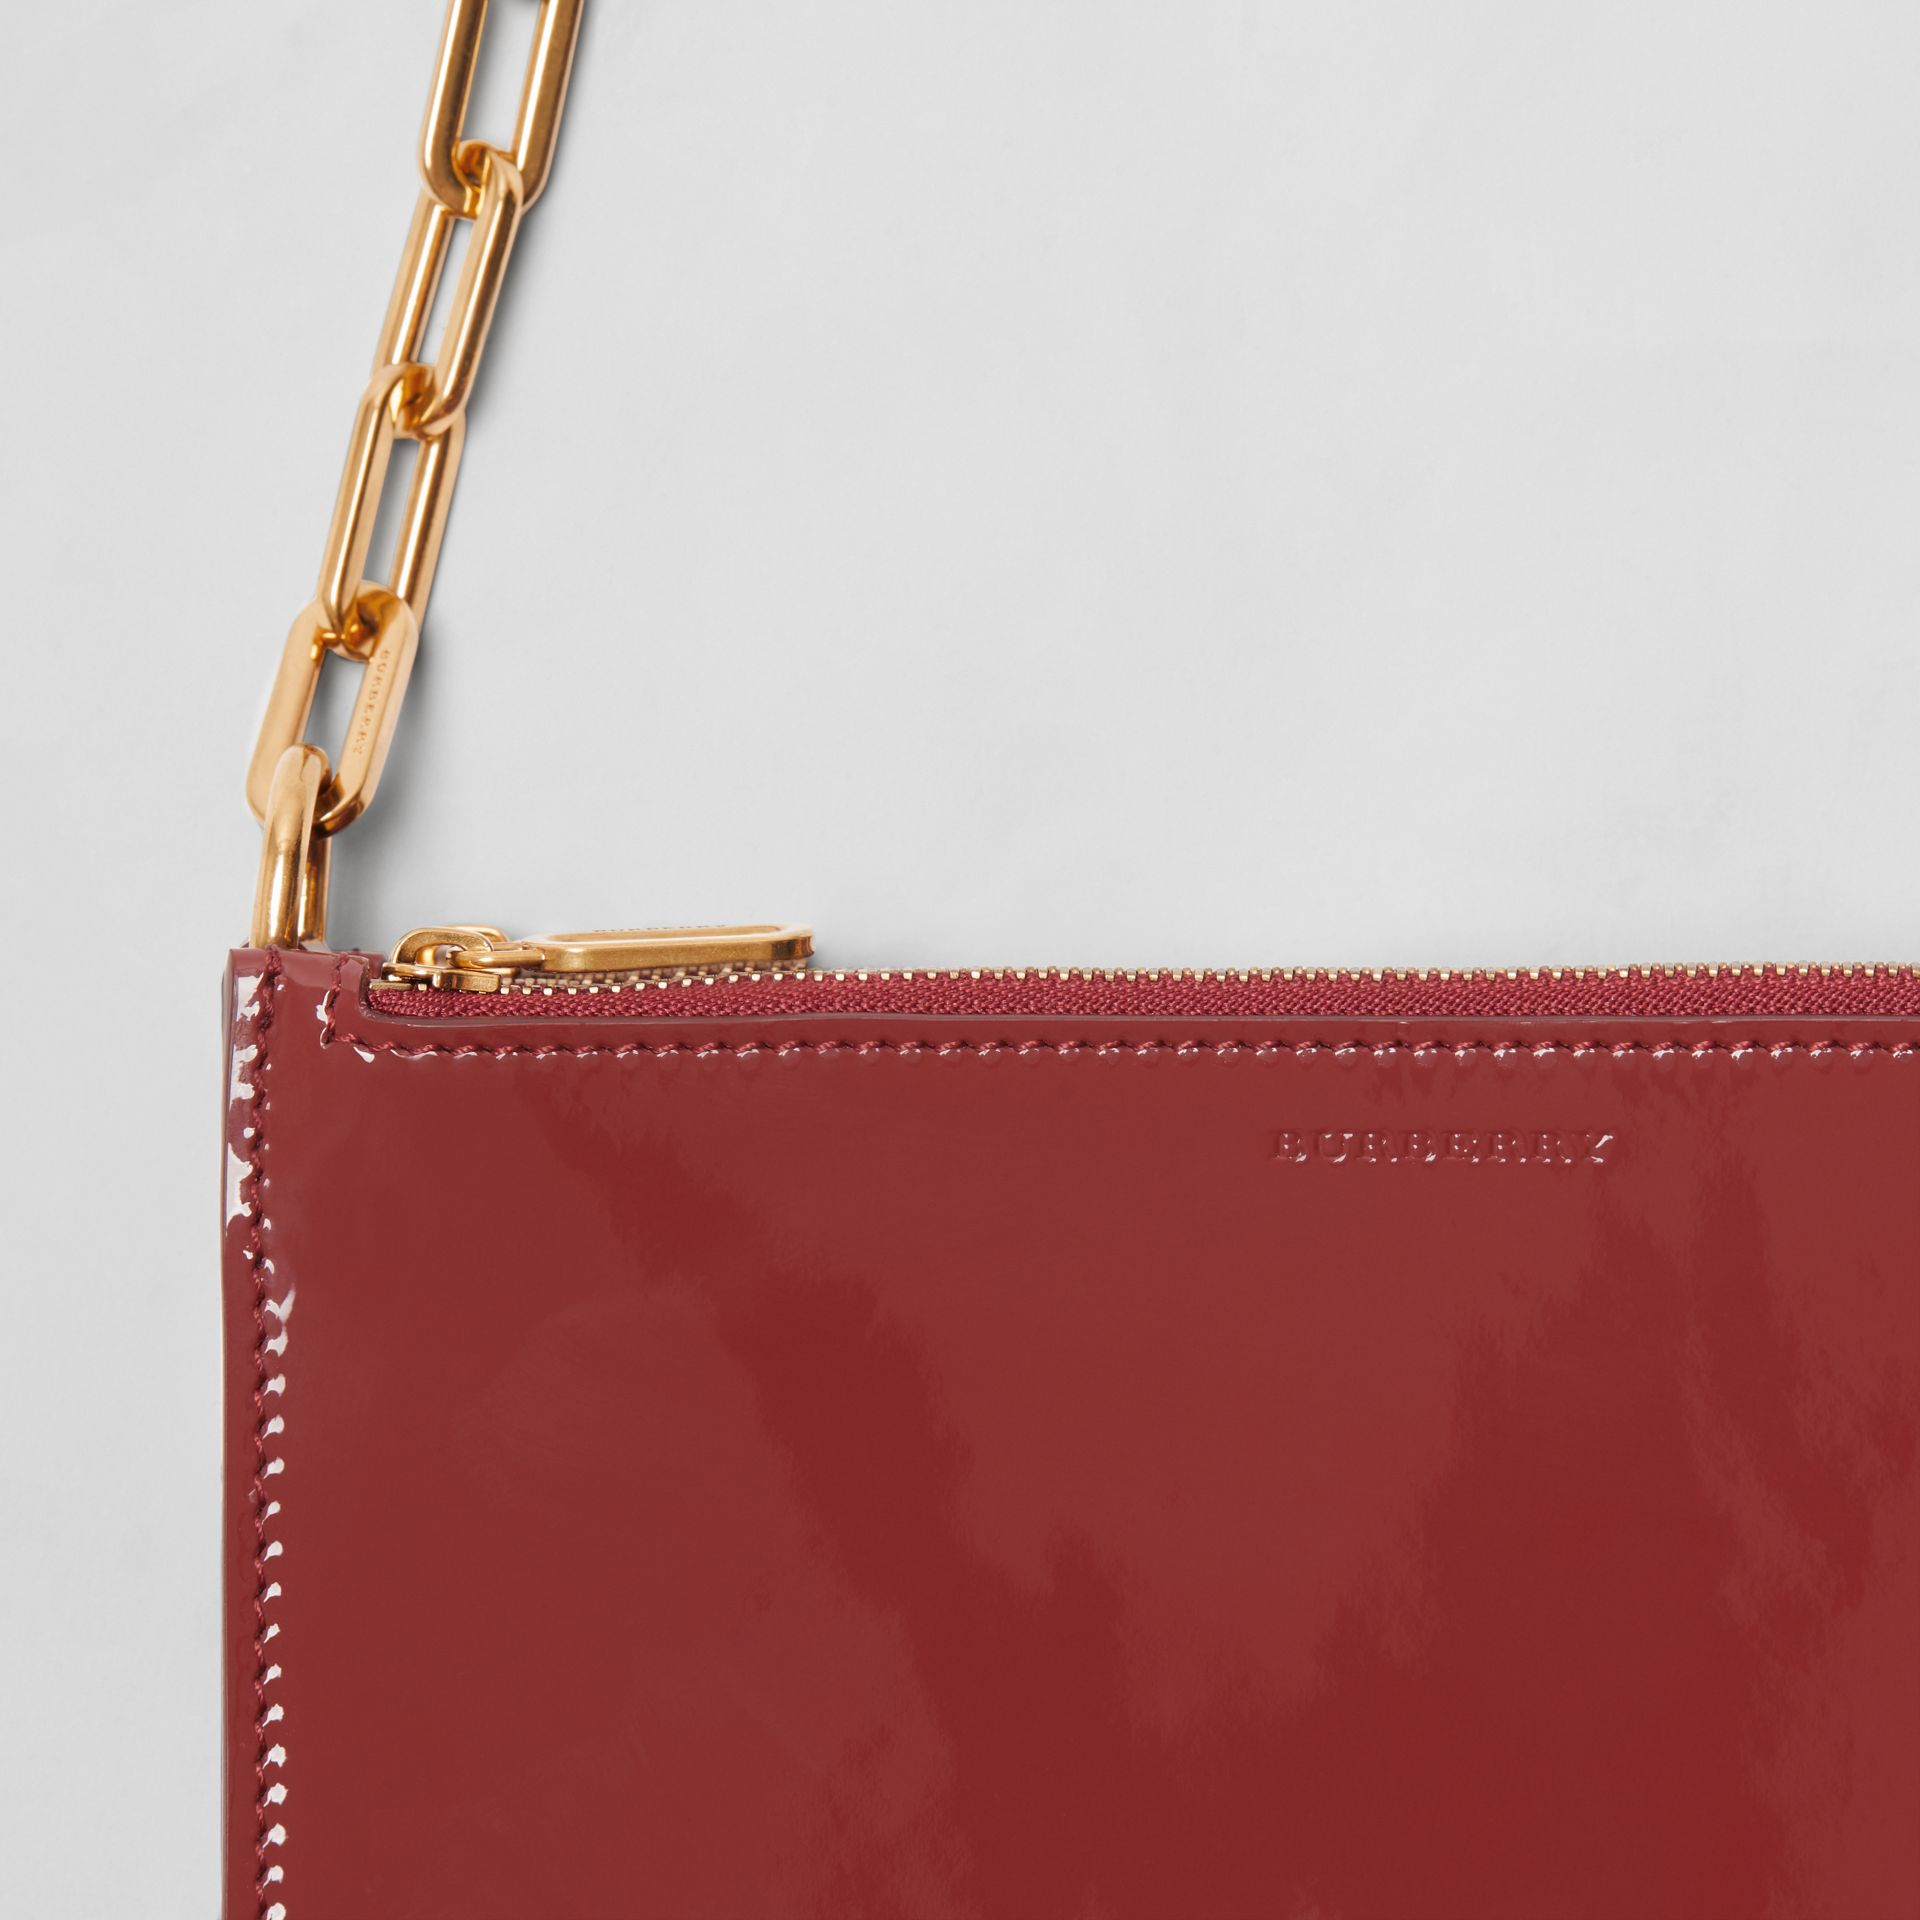 Triple Zip Patent Leather Crossbody Bag in Crimson - Women | Burberry - gallery image 1